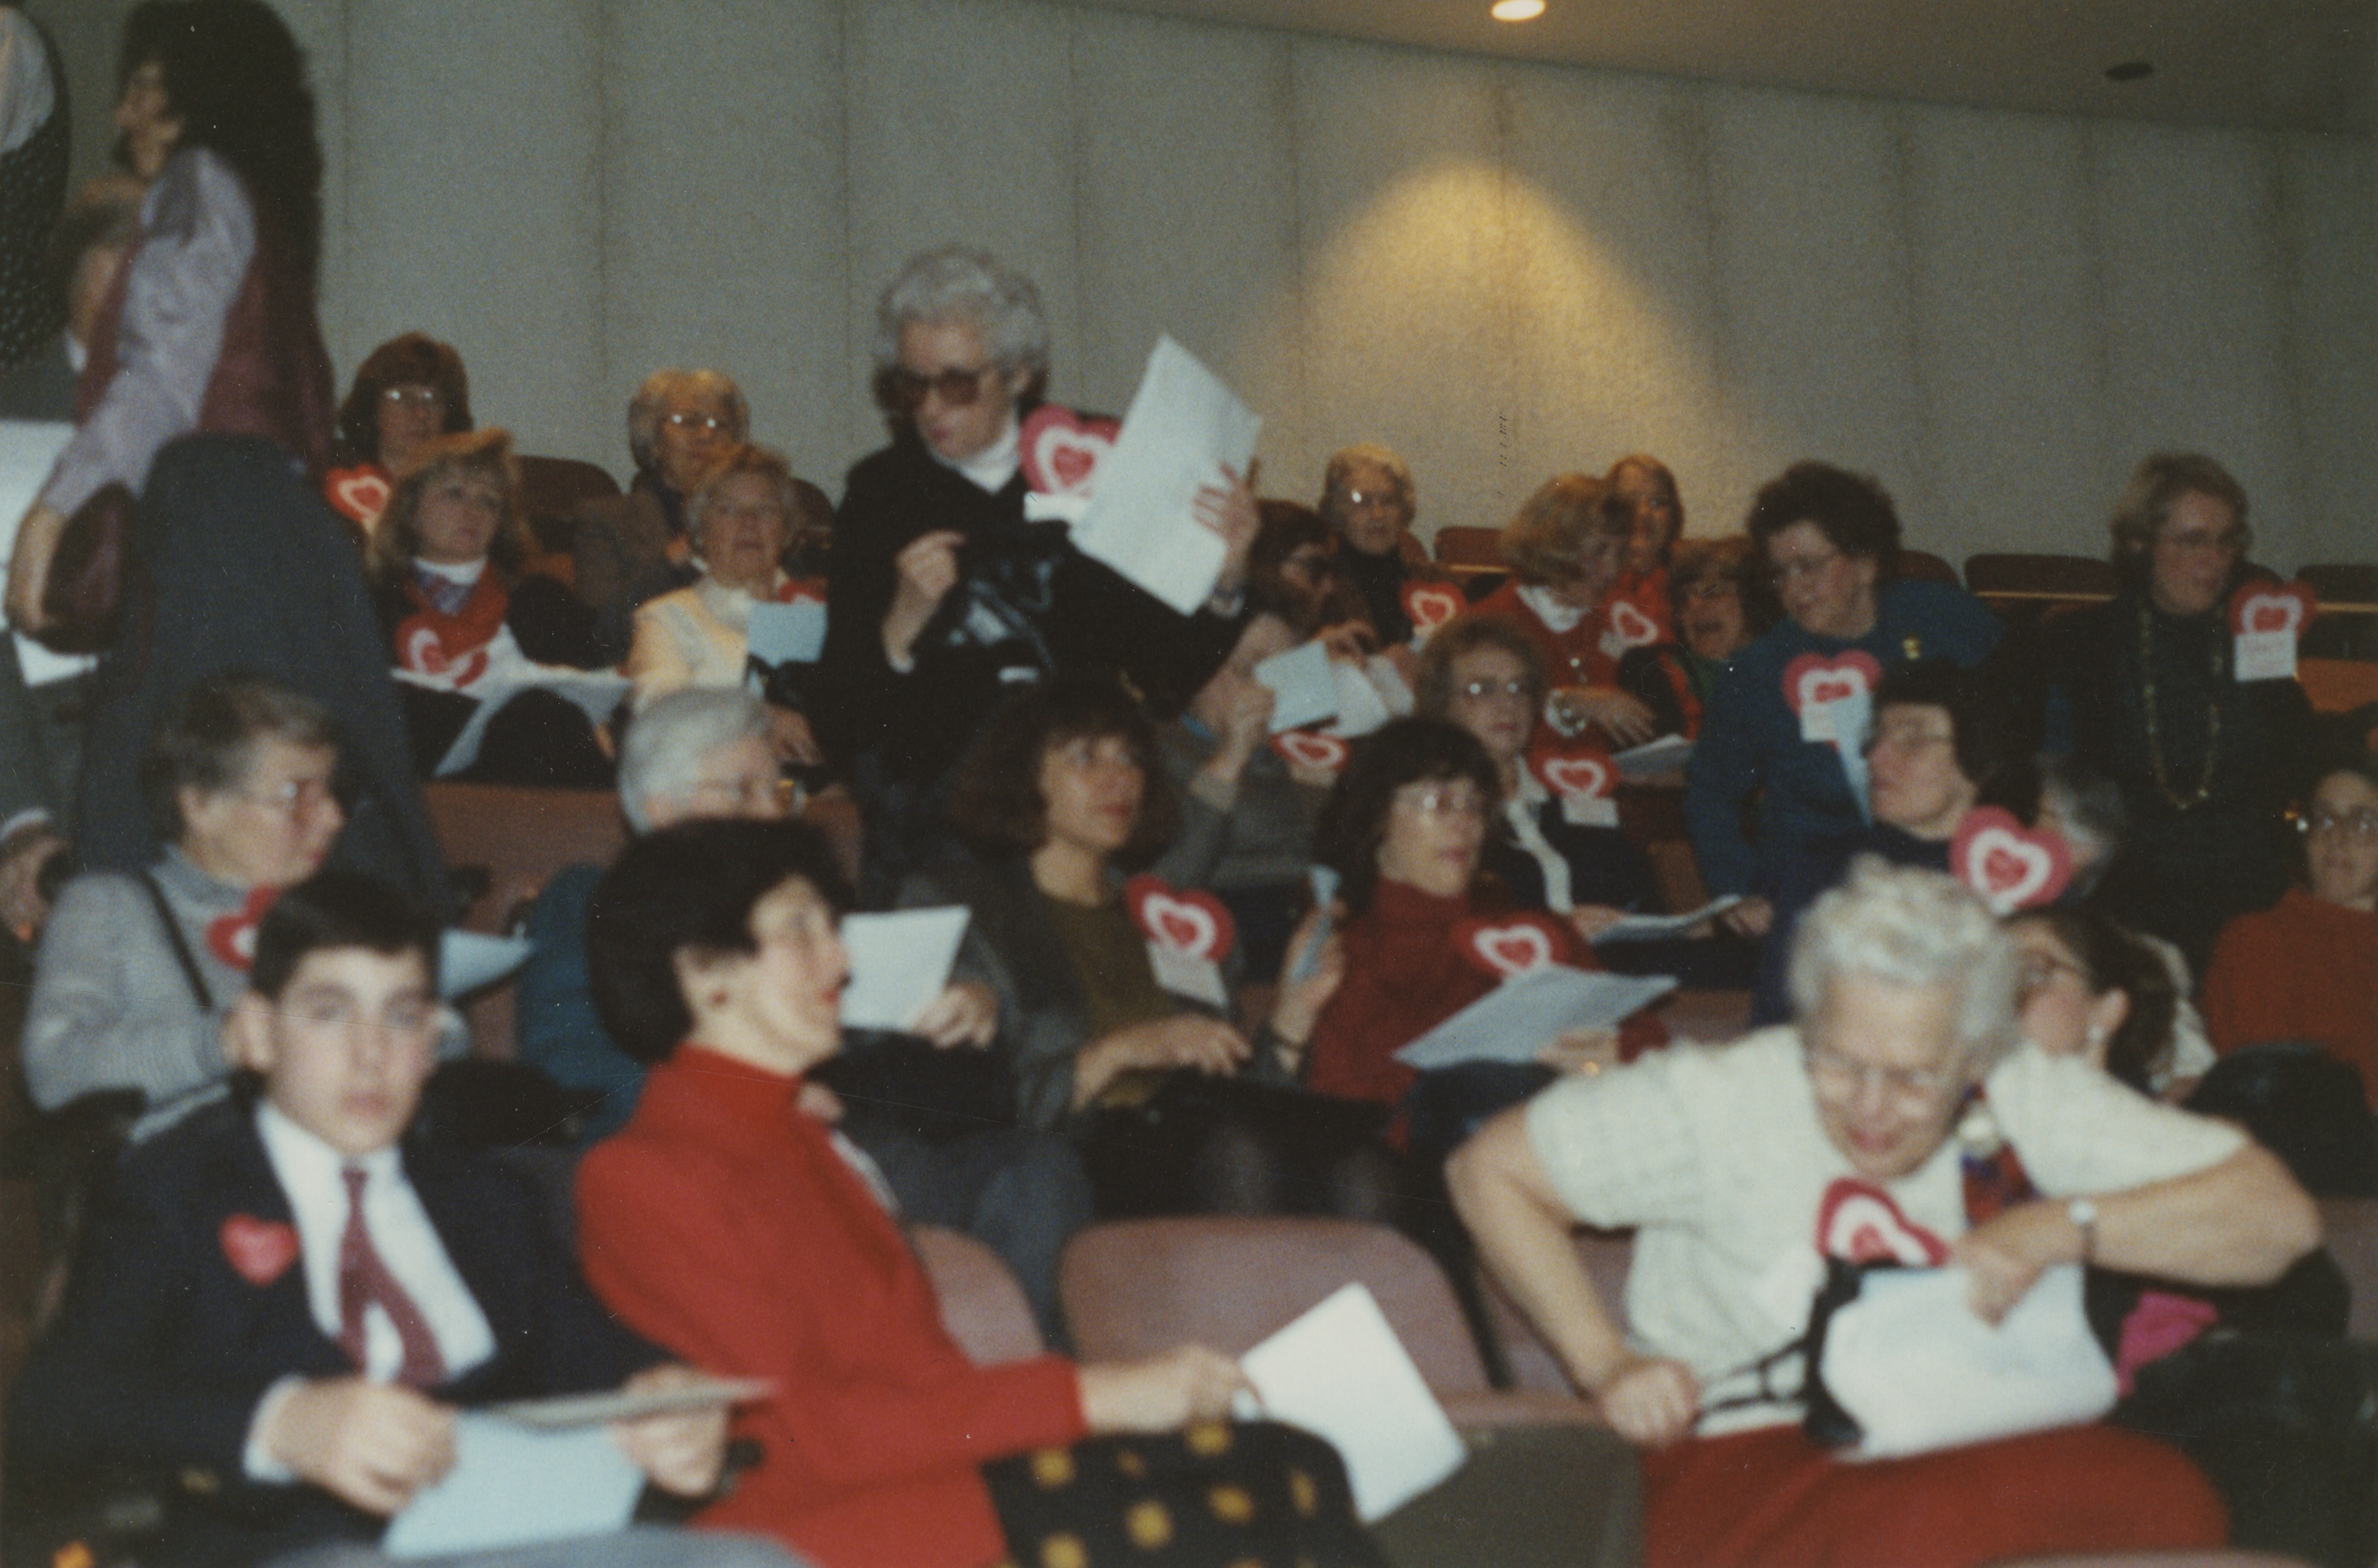 Youth Opera Volunteers, February, 1991 image